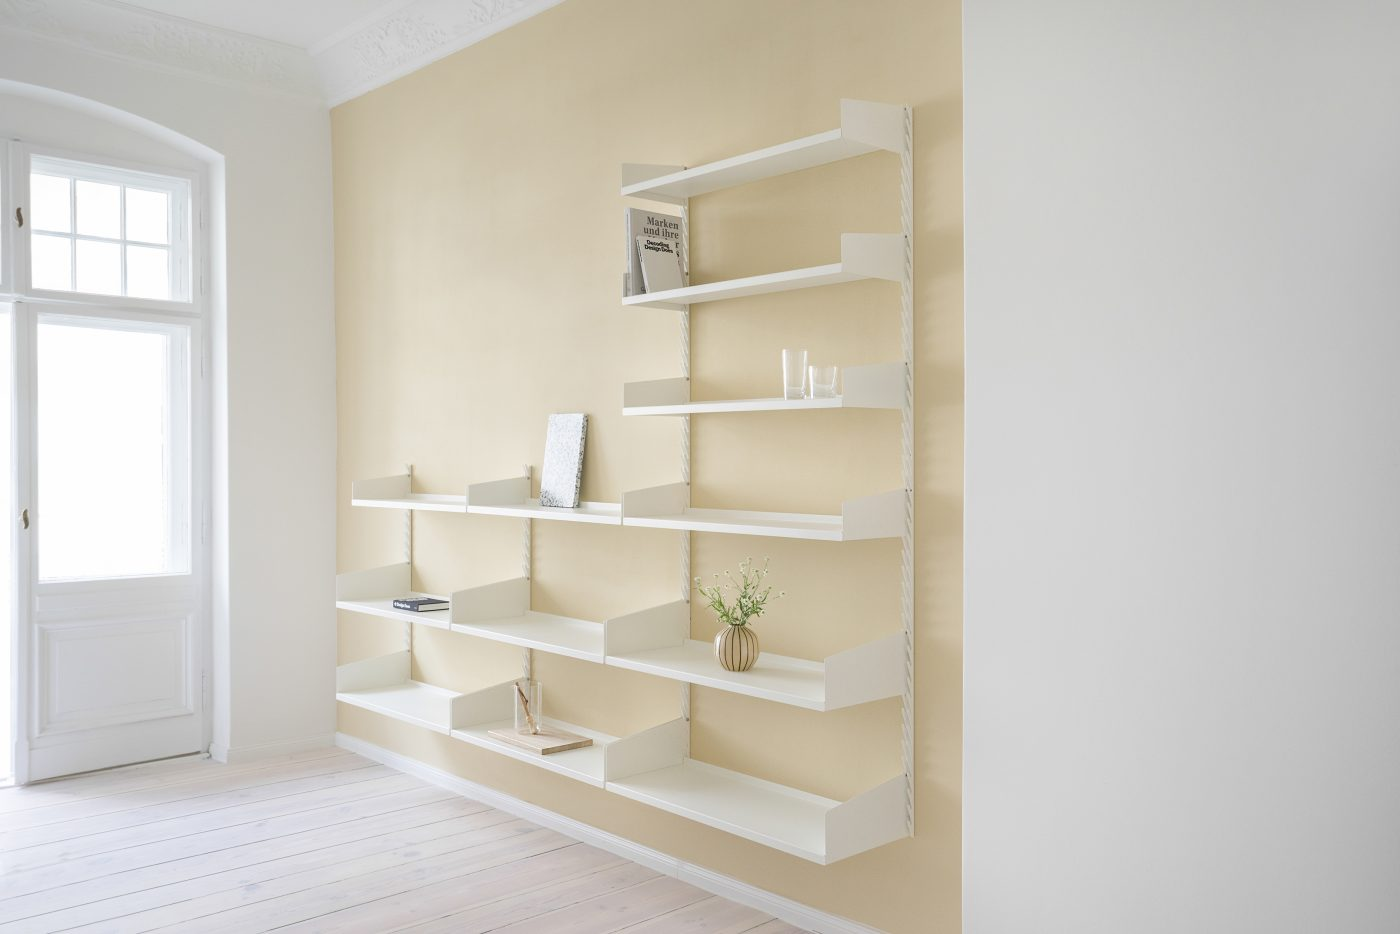 Even Better Shelf / Set 2 / Extension